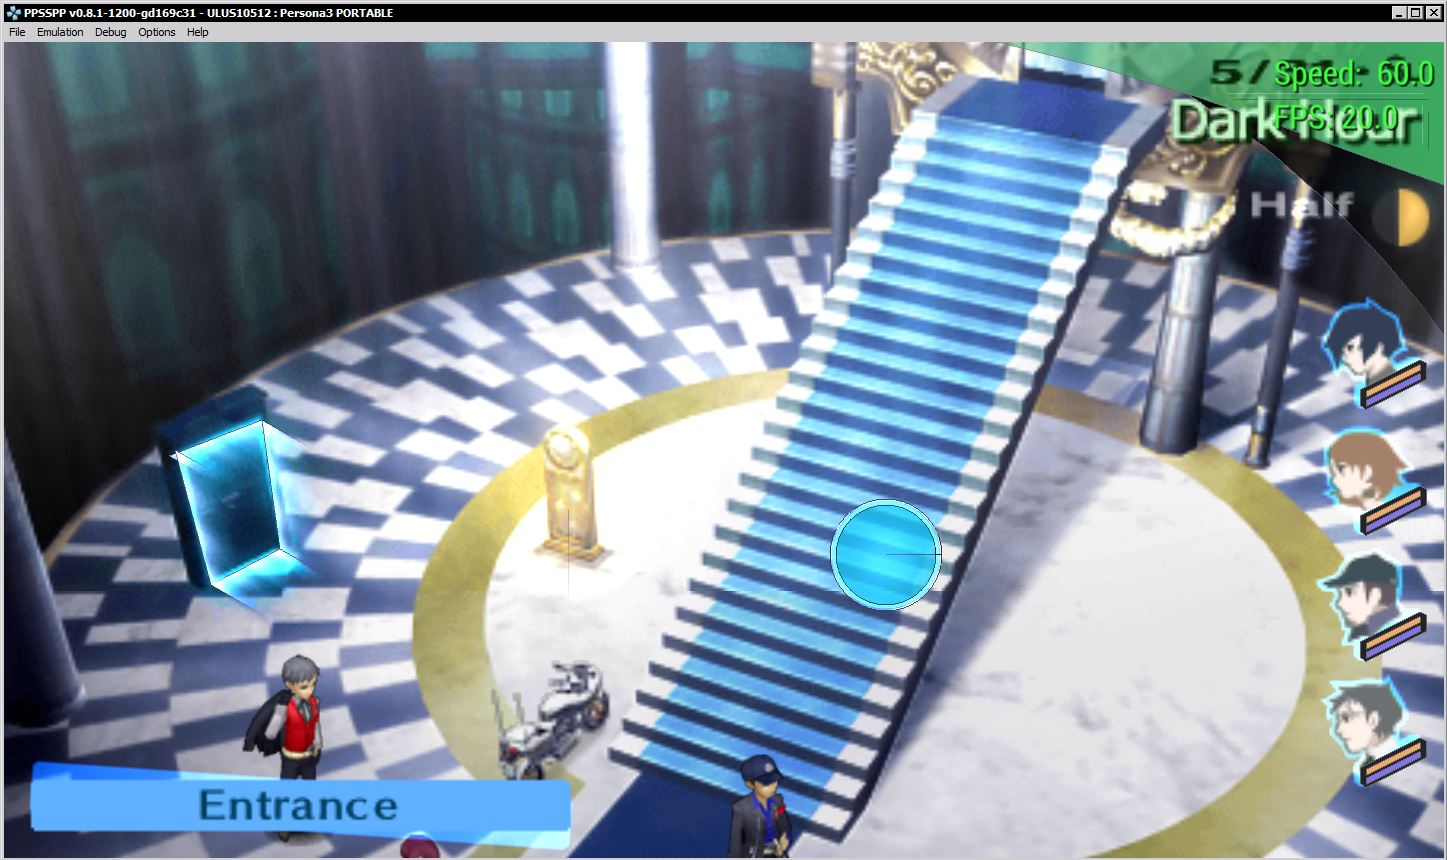 PPSSPP: Preliminary report on games with Multithreaded enabled